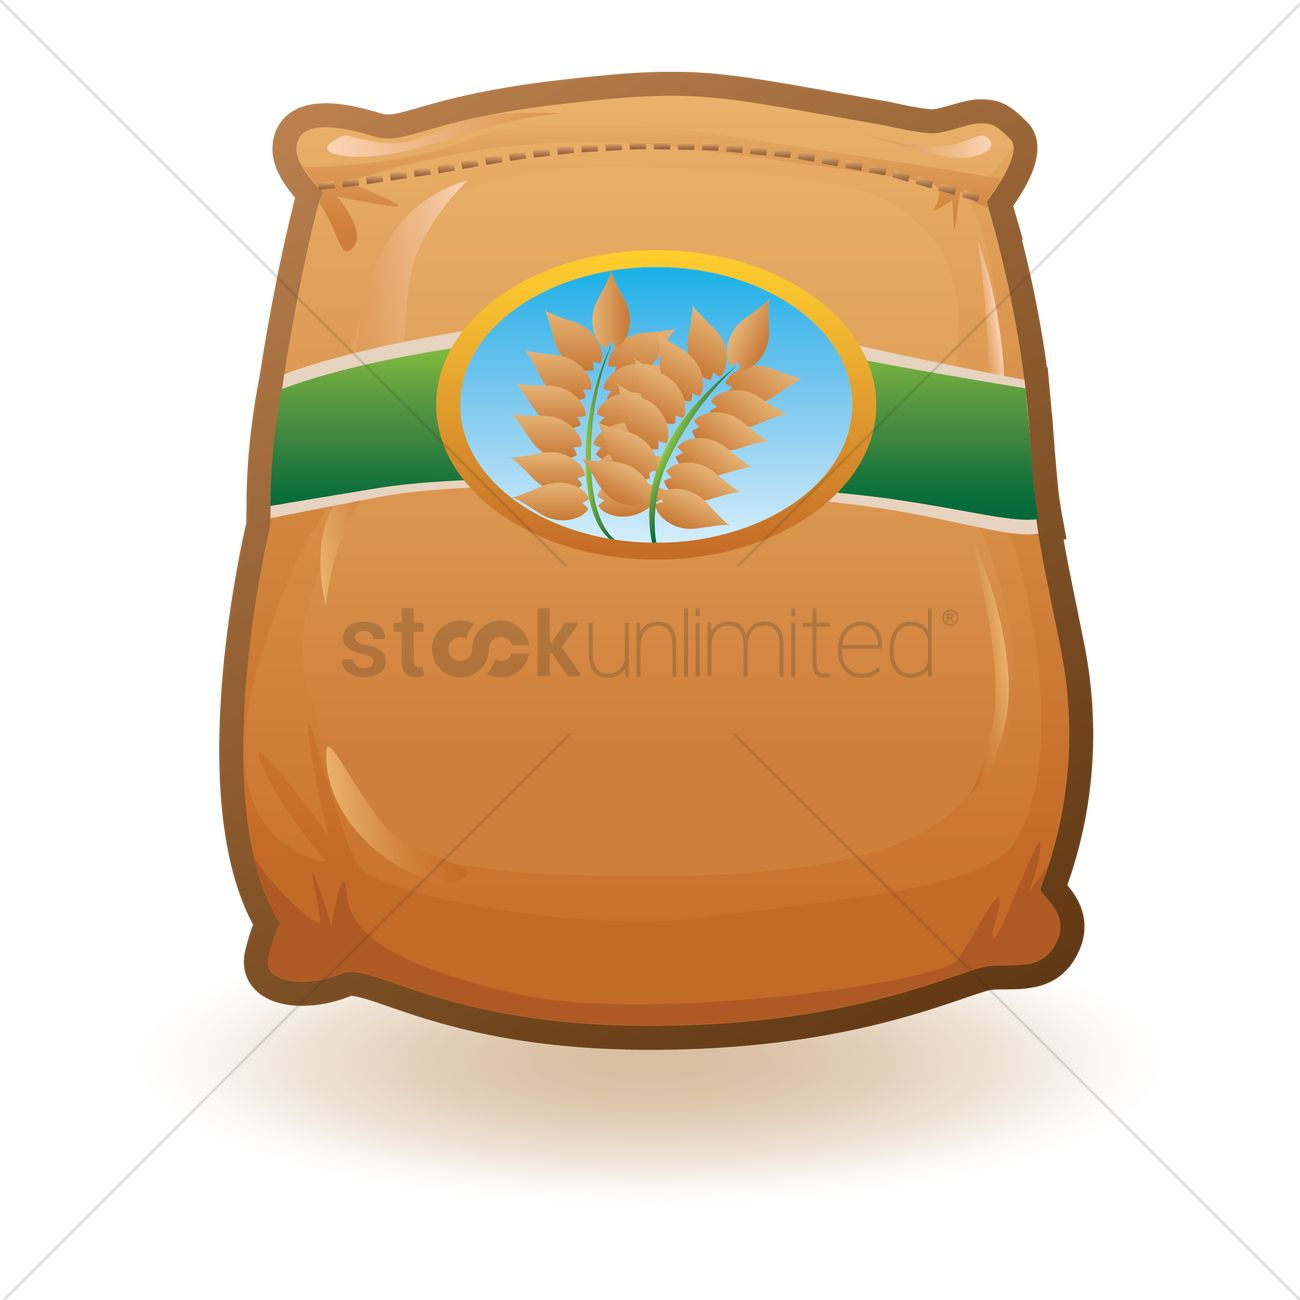 Rice bag clipart 4 » Clipart Station.